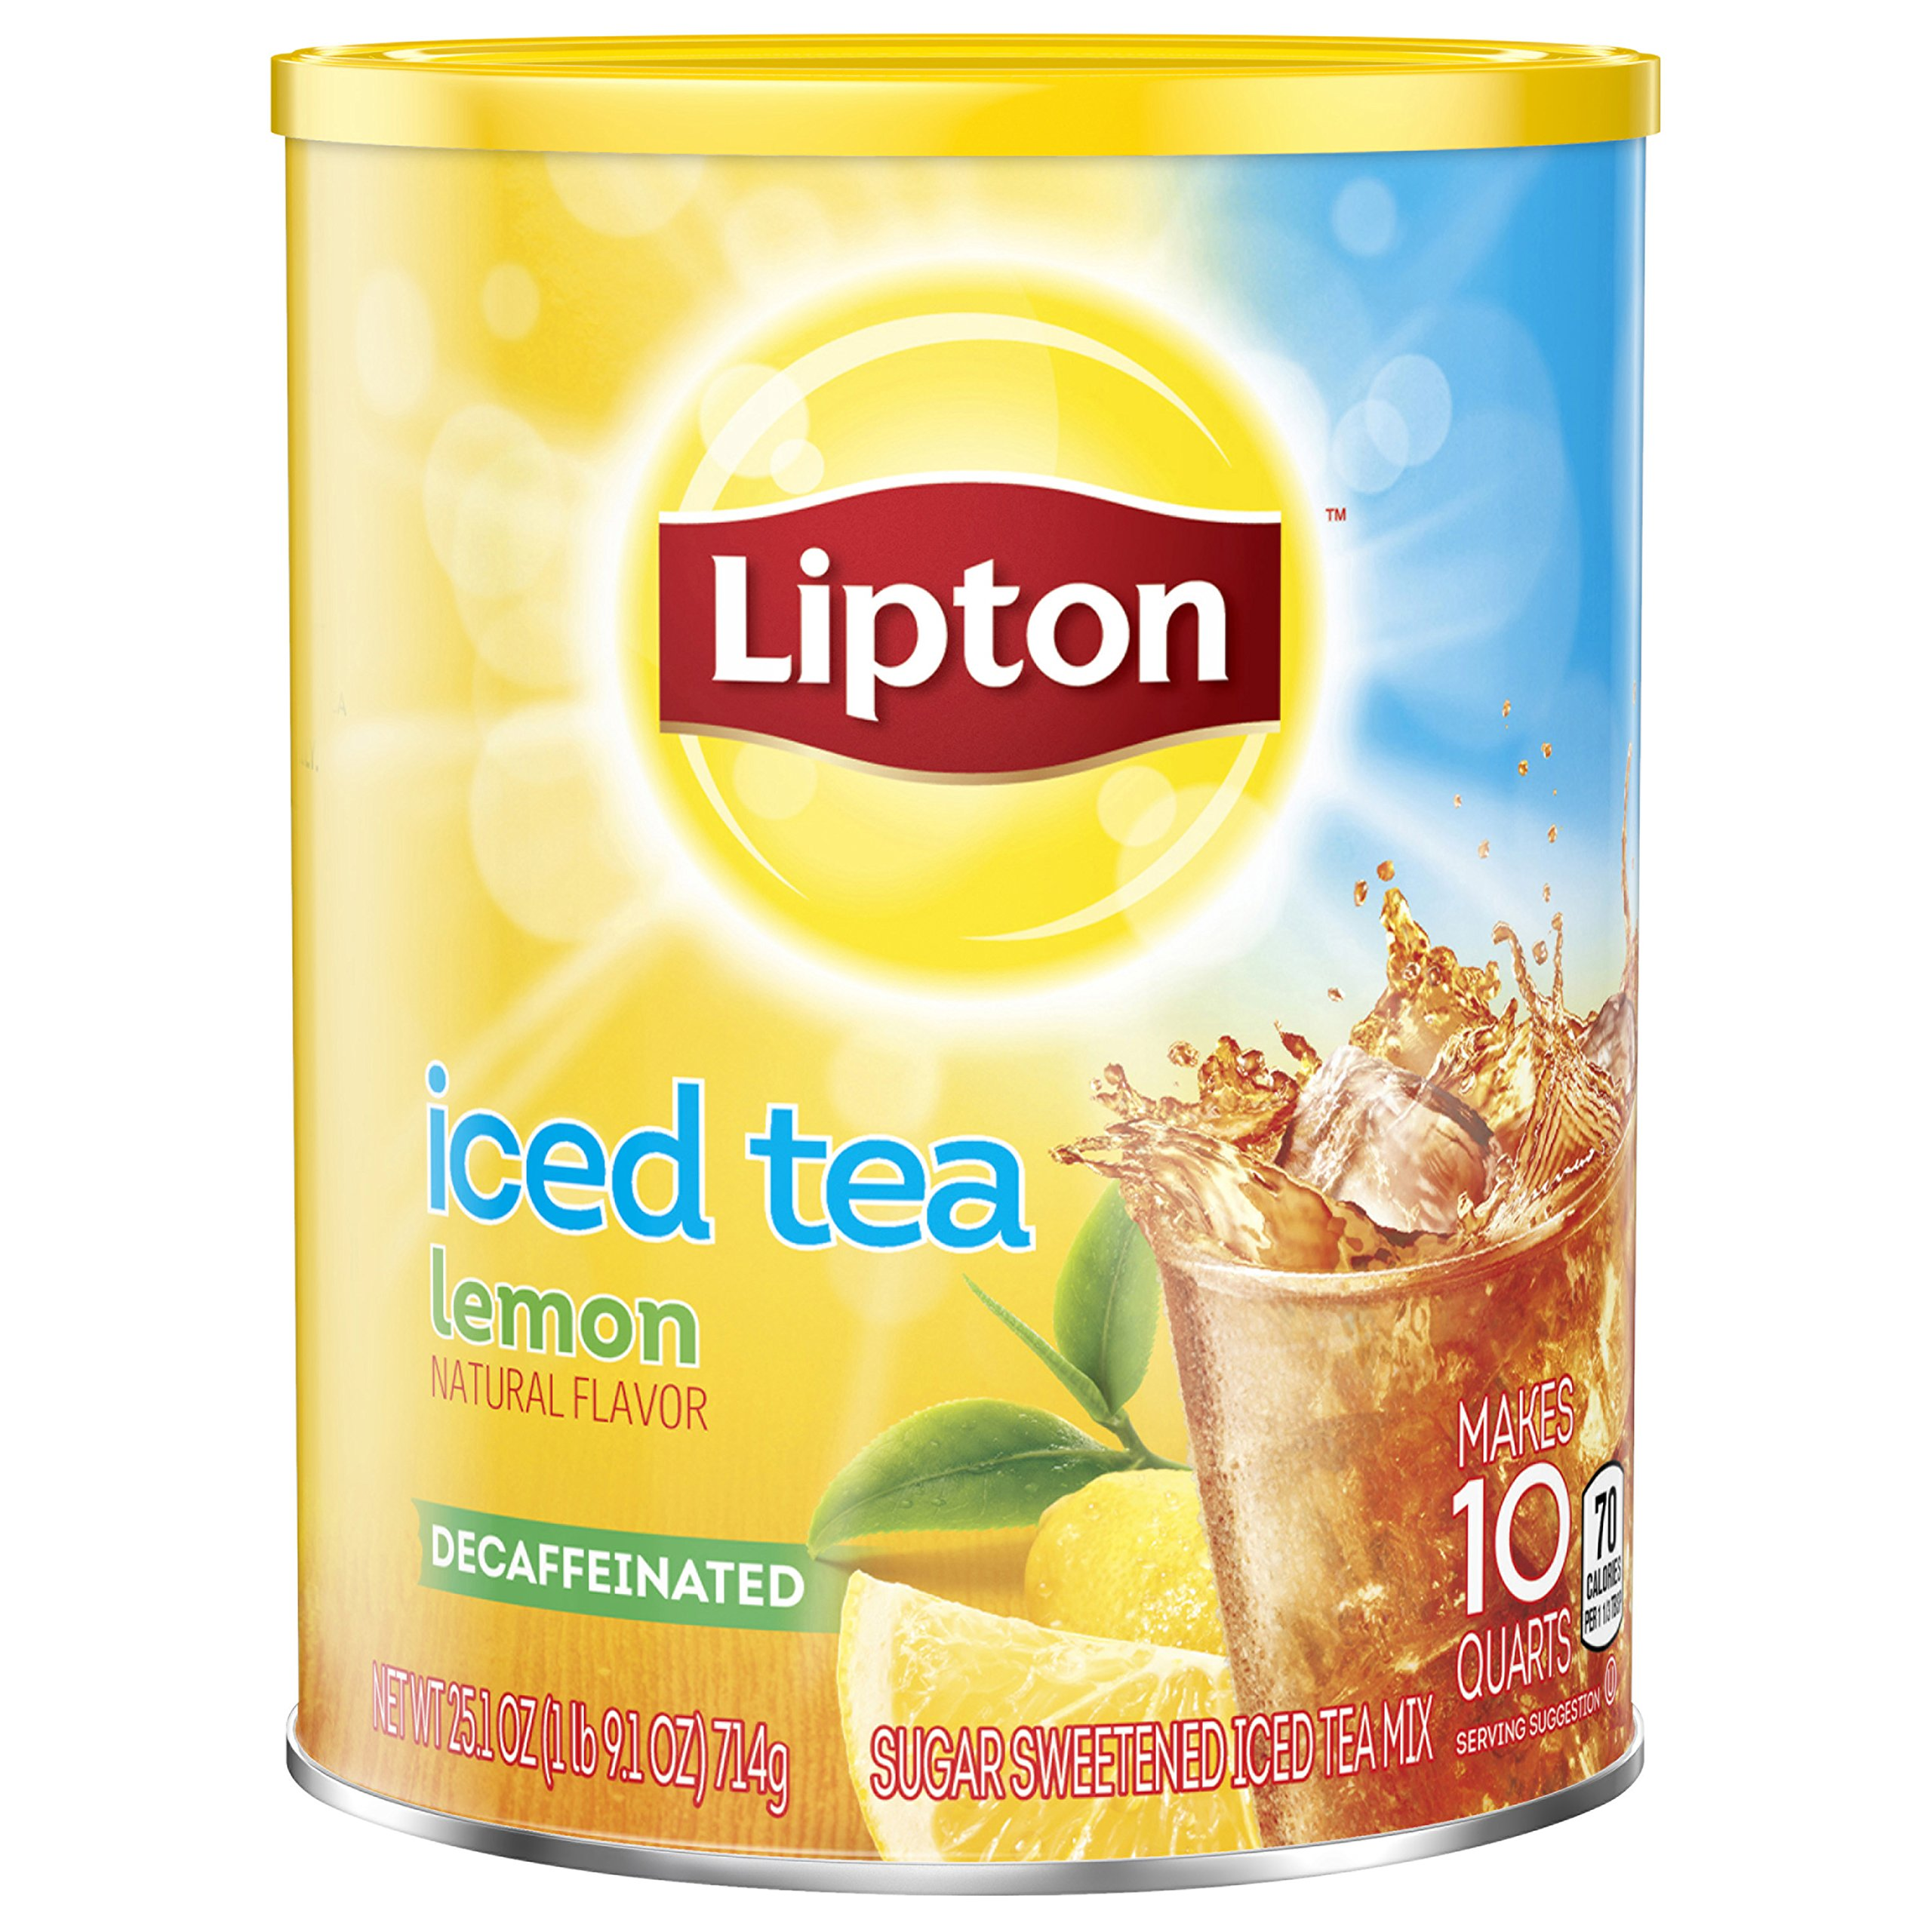 Lipton Black Iced Tea Mix Decaf Lemon Sweetened 10 qt, pack of 6 by Lipton